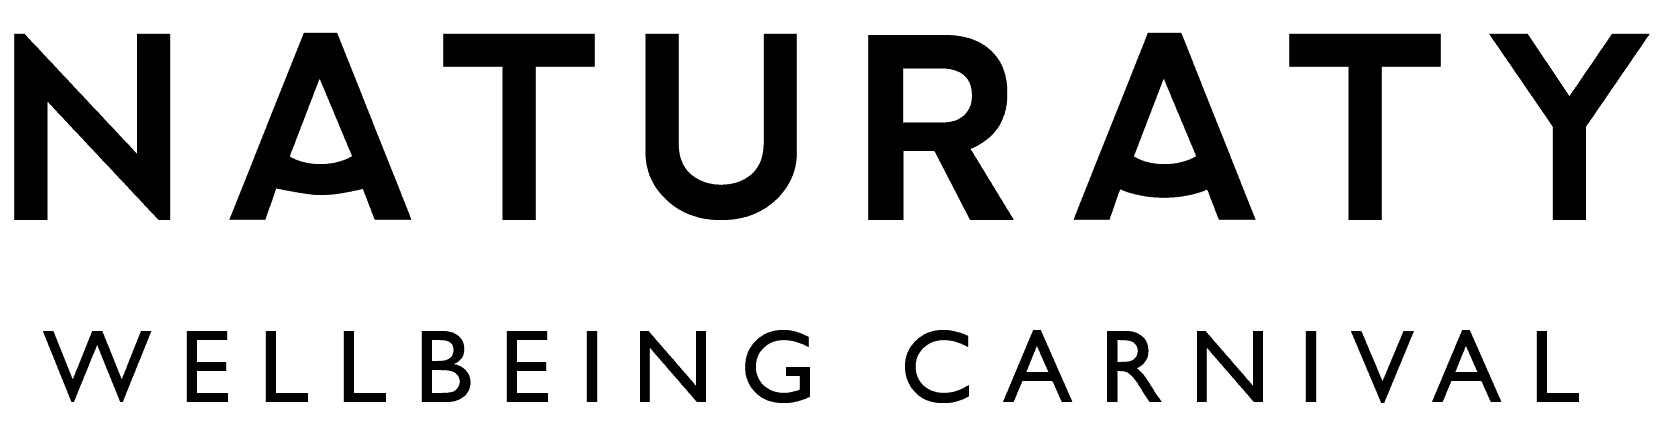 Naturaty Wellbeing Carnival